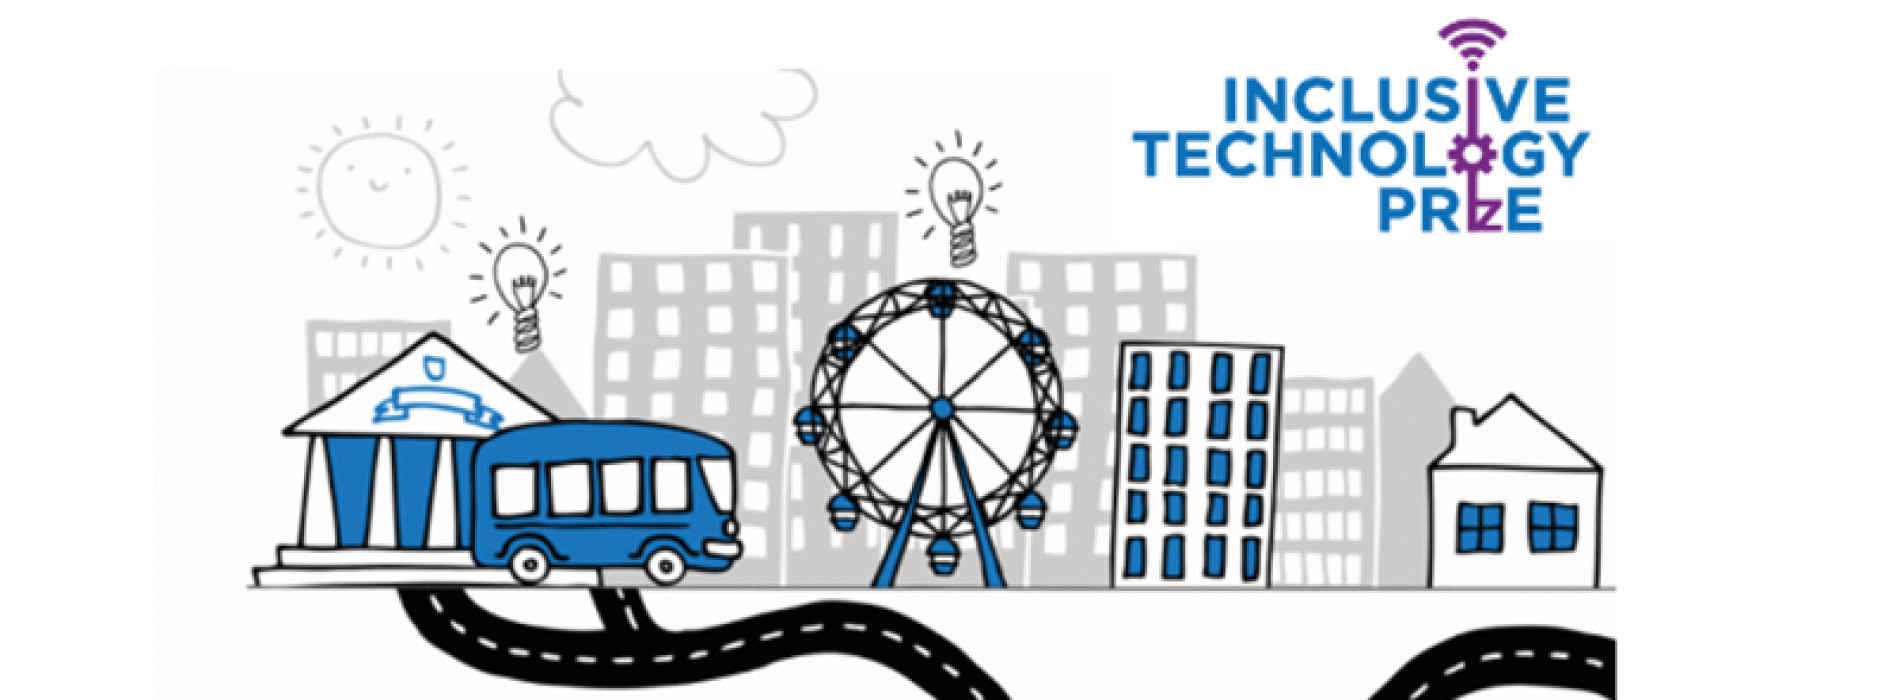 Inclusive Technology Prize – apply now!